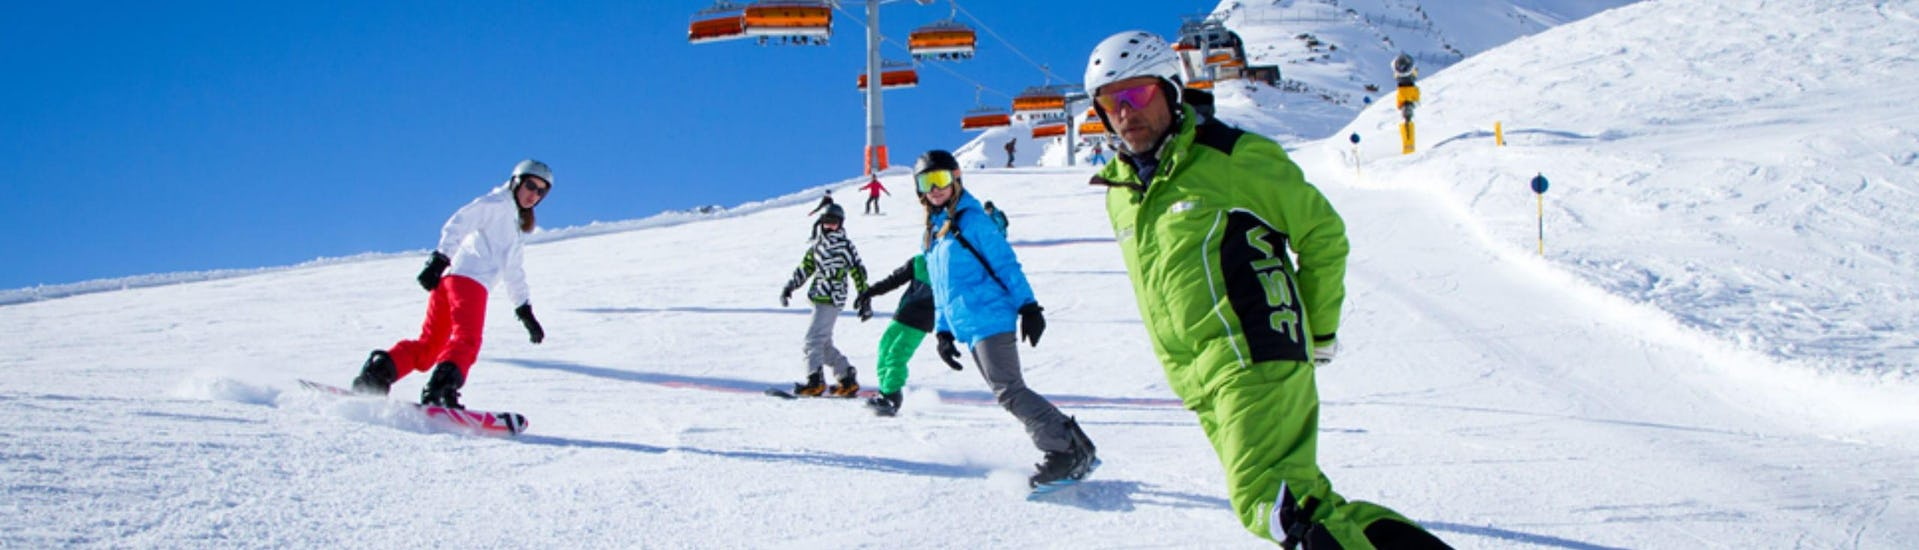 A group of people is learning to snowboard during their Snowboarding Lessons for Kids & Adults - All Levels with the ski school Ski- und Bikeschule Ötztal Sölden.